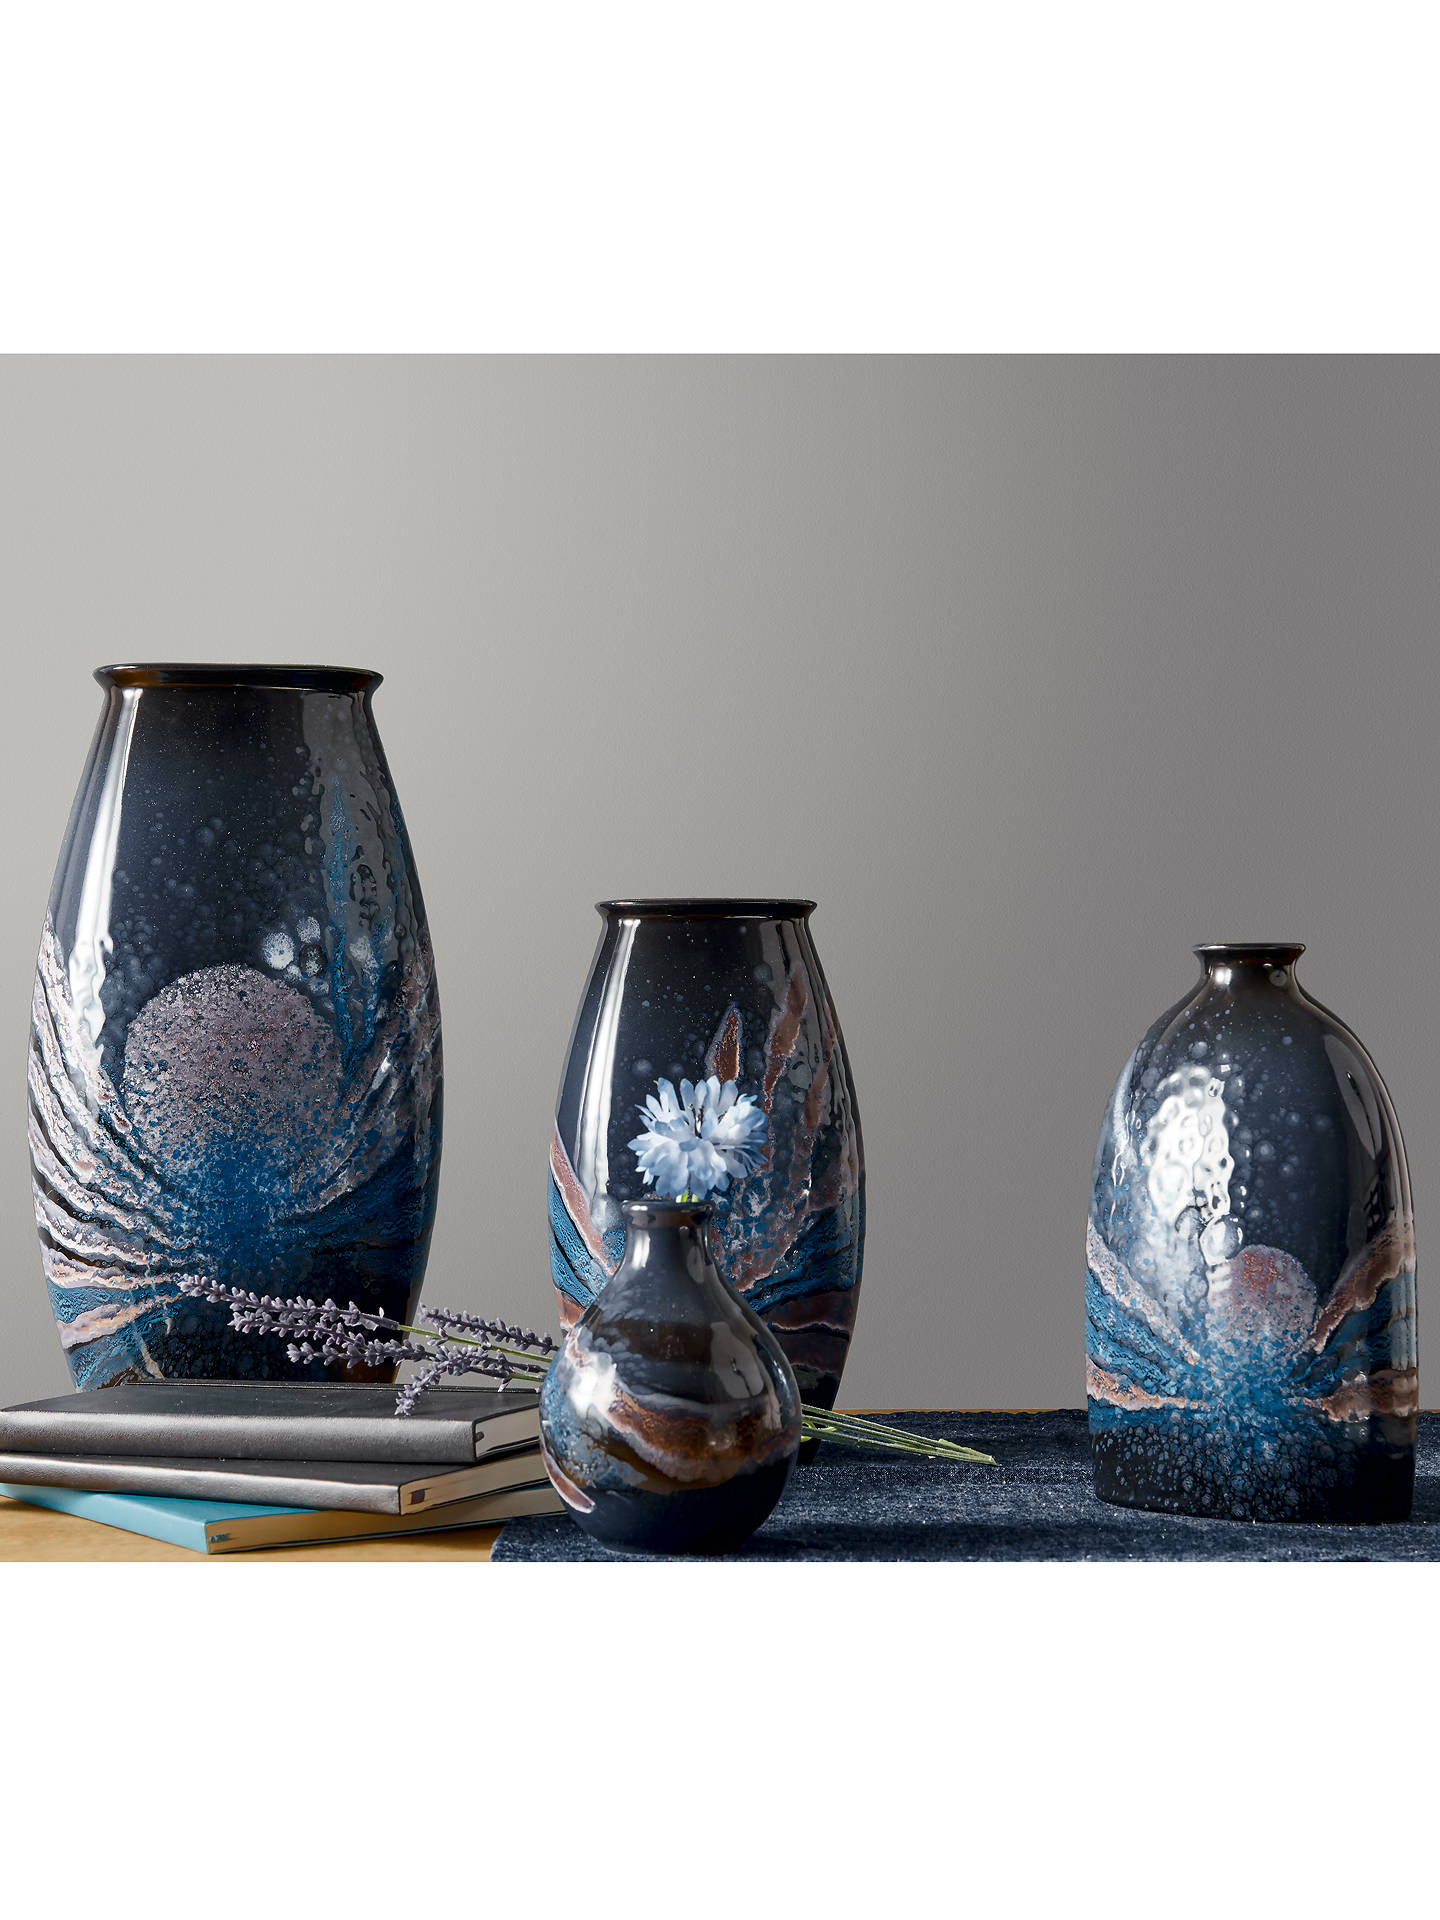 BuyPoole Pottery Celestial Manhattan Vase, H36cm, Grey/ Blue Online at johnlewis.com